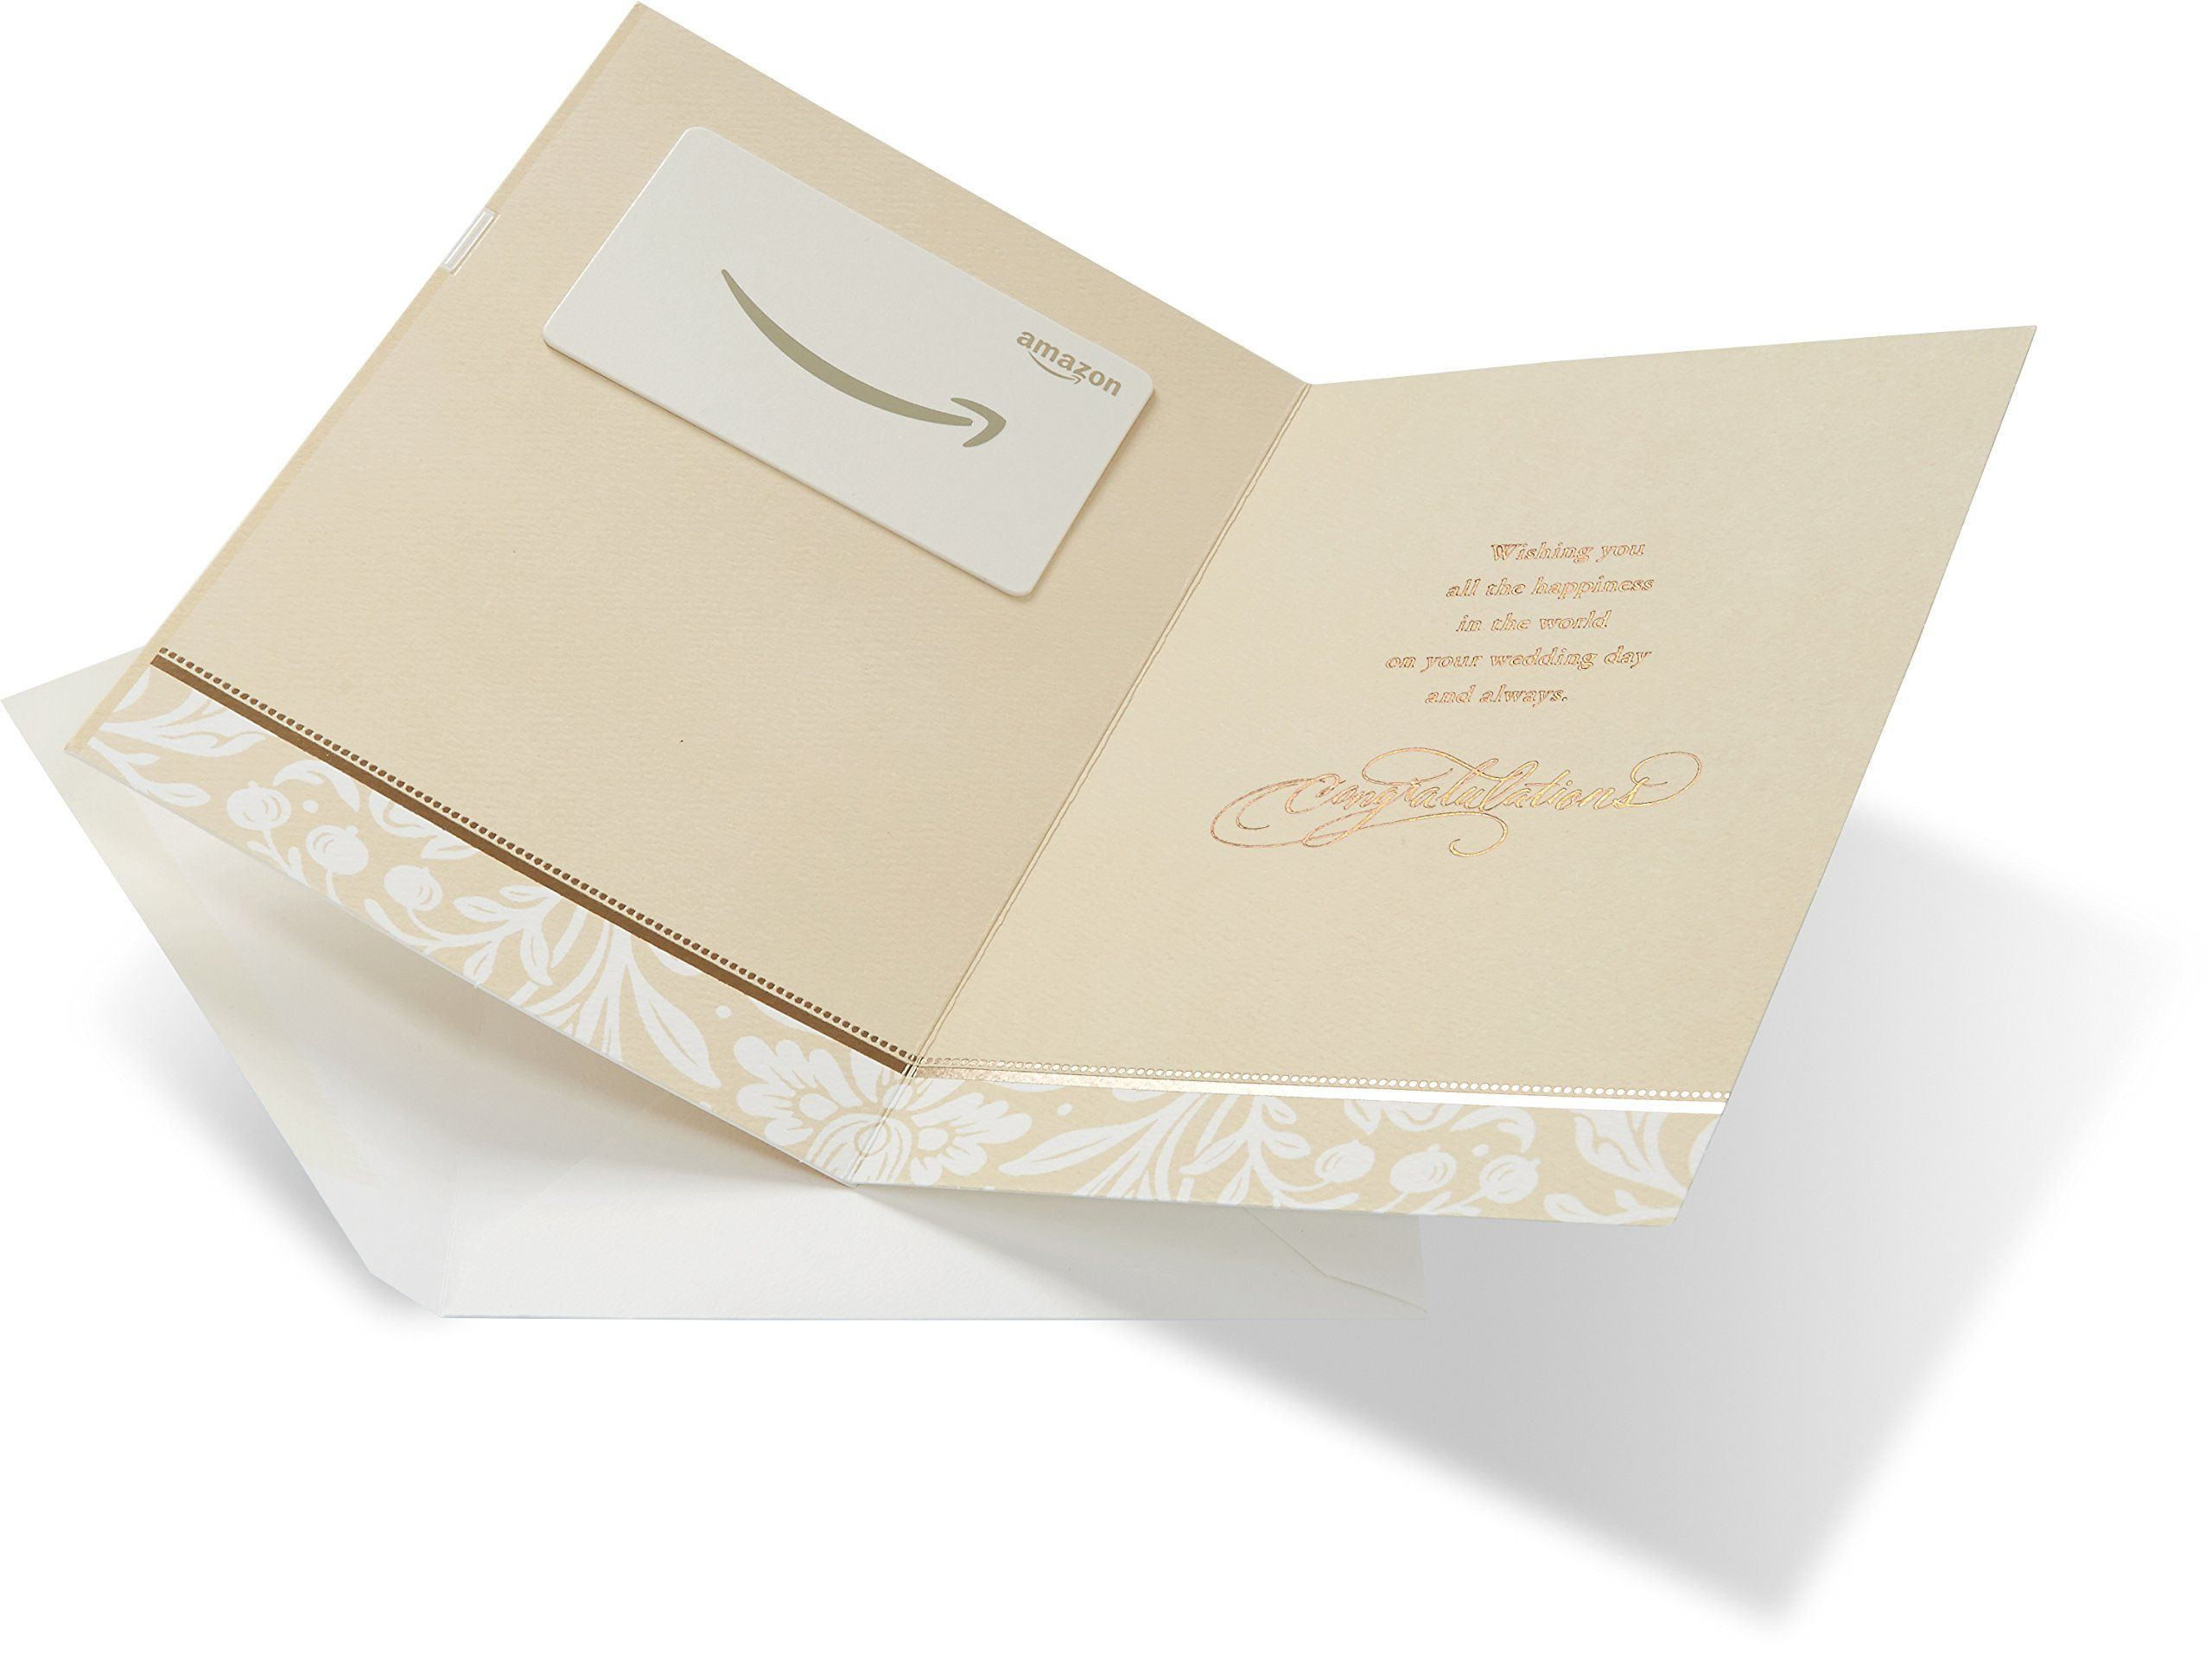 Amazon gift card in a premium greeting card by american